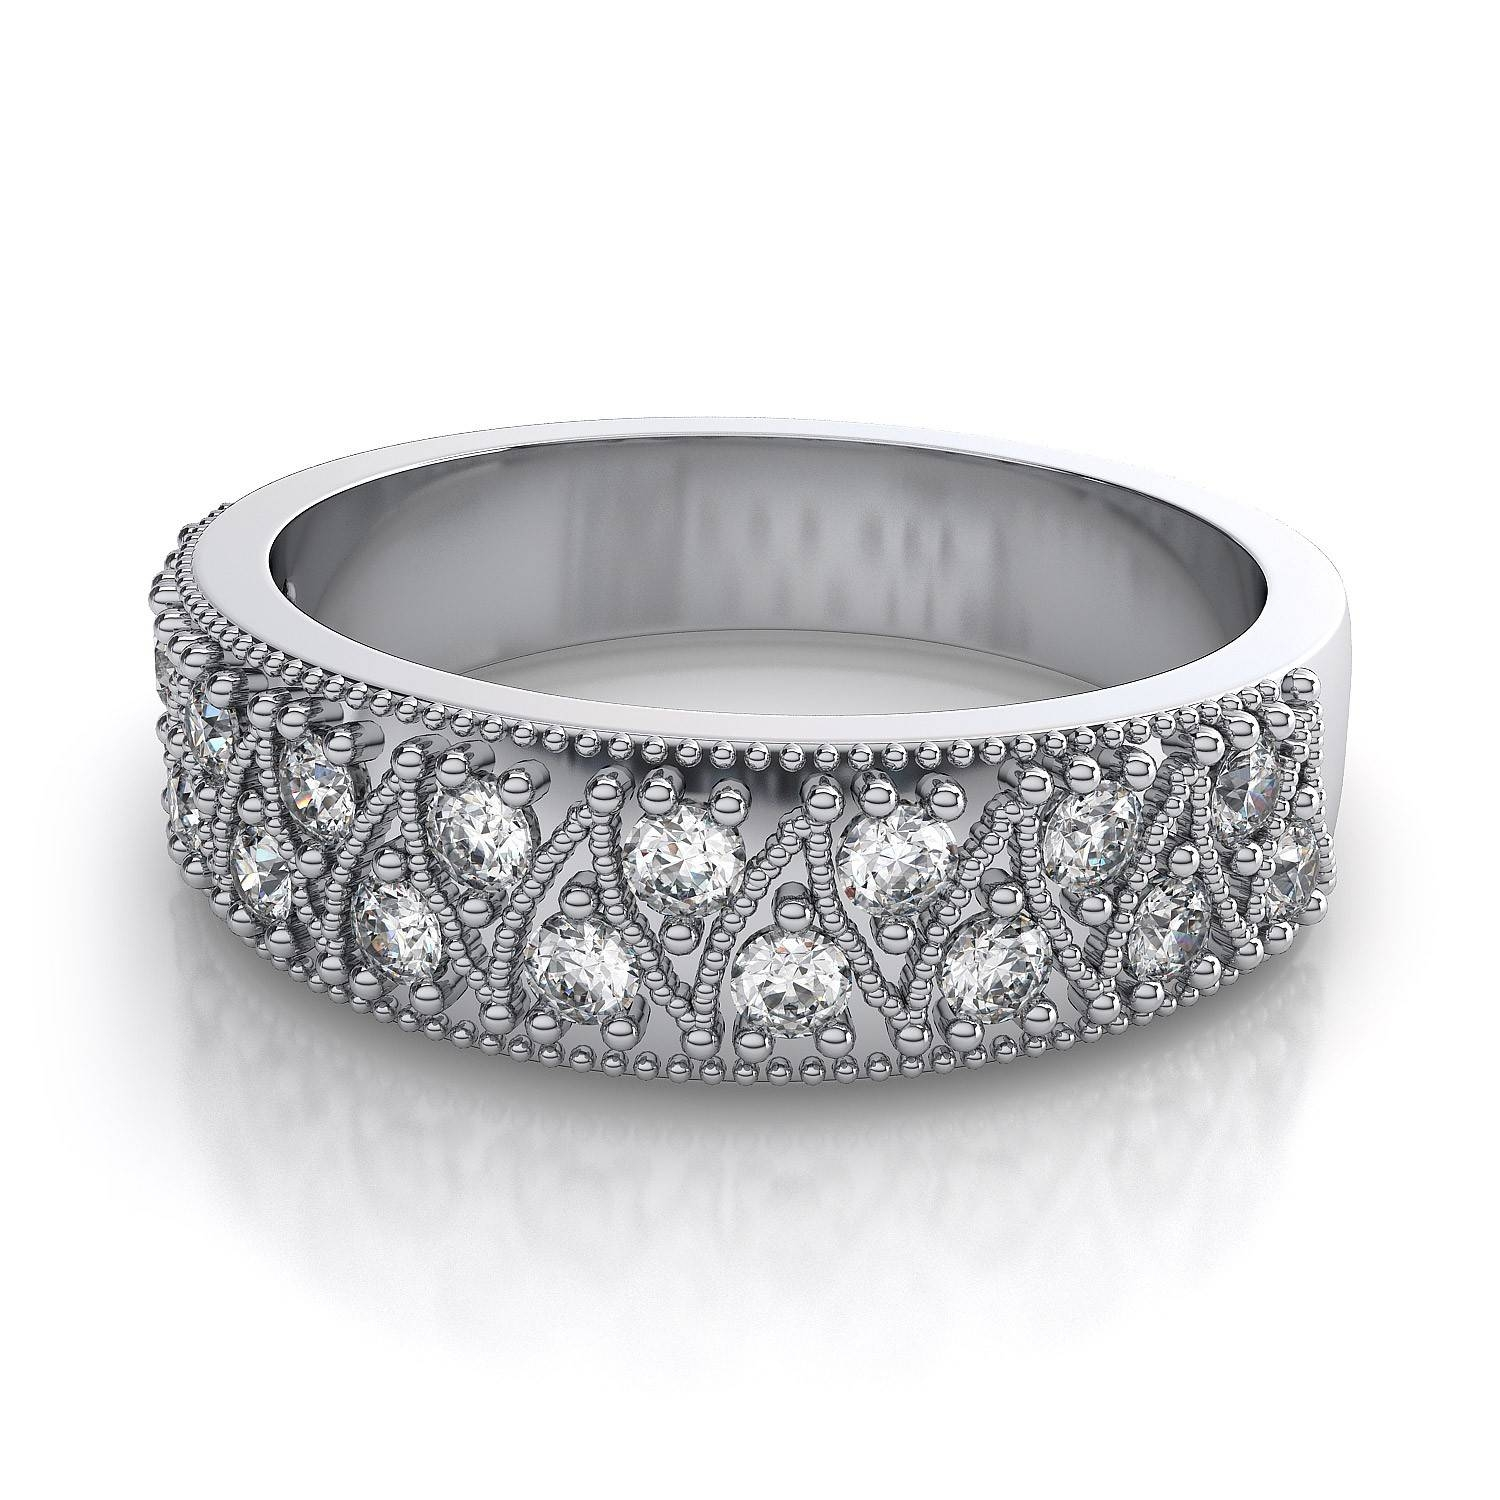 Uncategorized : Engaging Ring Wedding Bands To Match Solitaire Intended For Best And Newest Platinum Diamond Anniversary Rings (View 22 of 25)